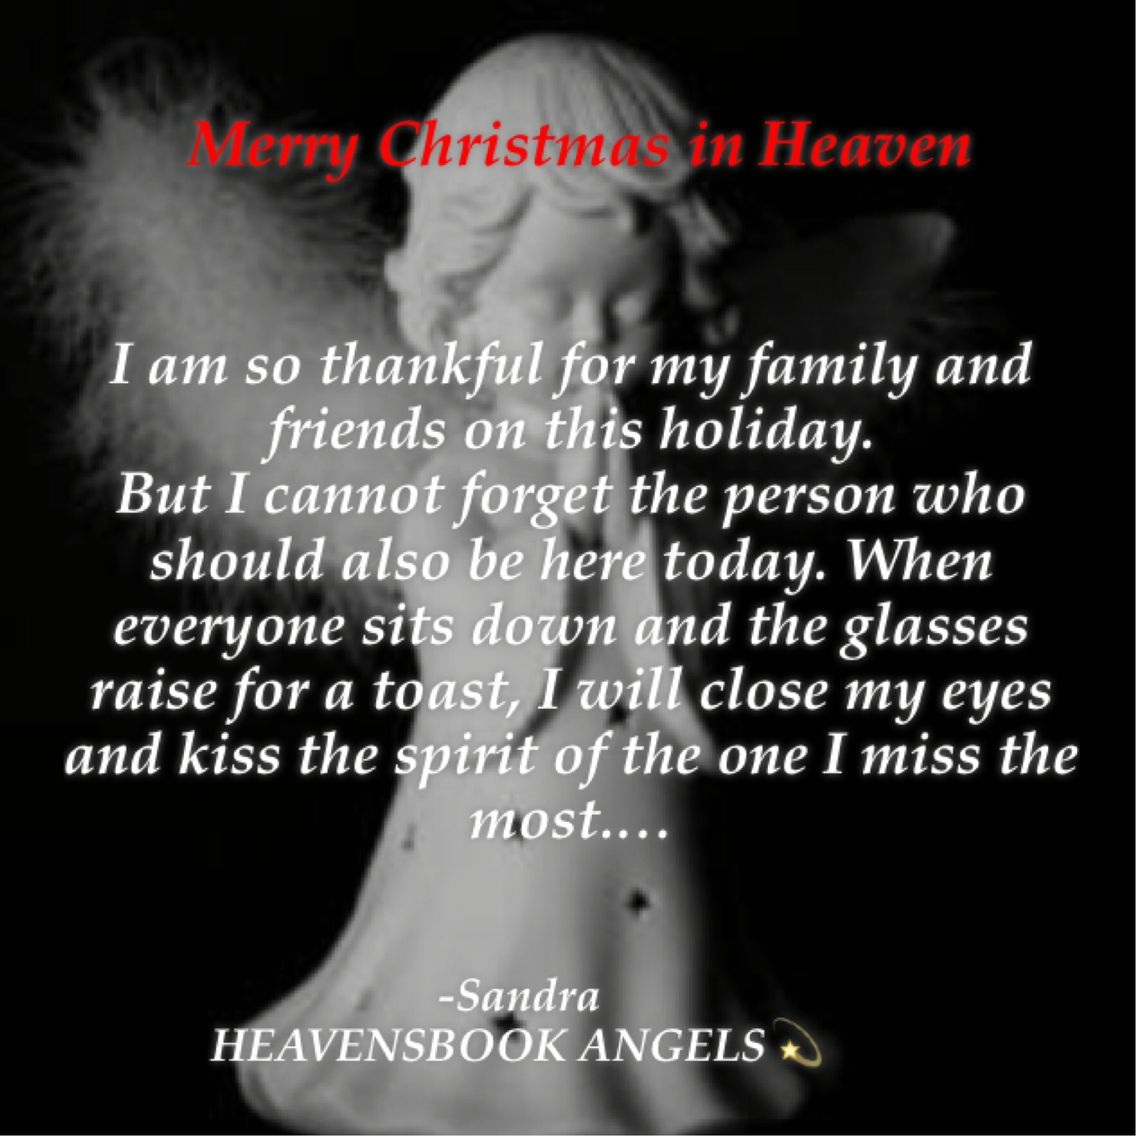 In Remembrance Quotes Of A Loved One Merry Christmas In Heaven Www.heavensbookangels  Memory Loss